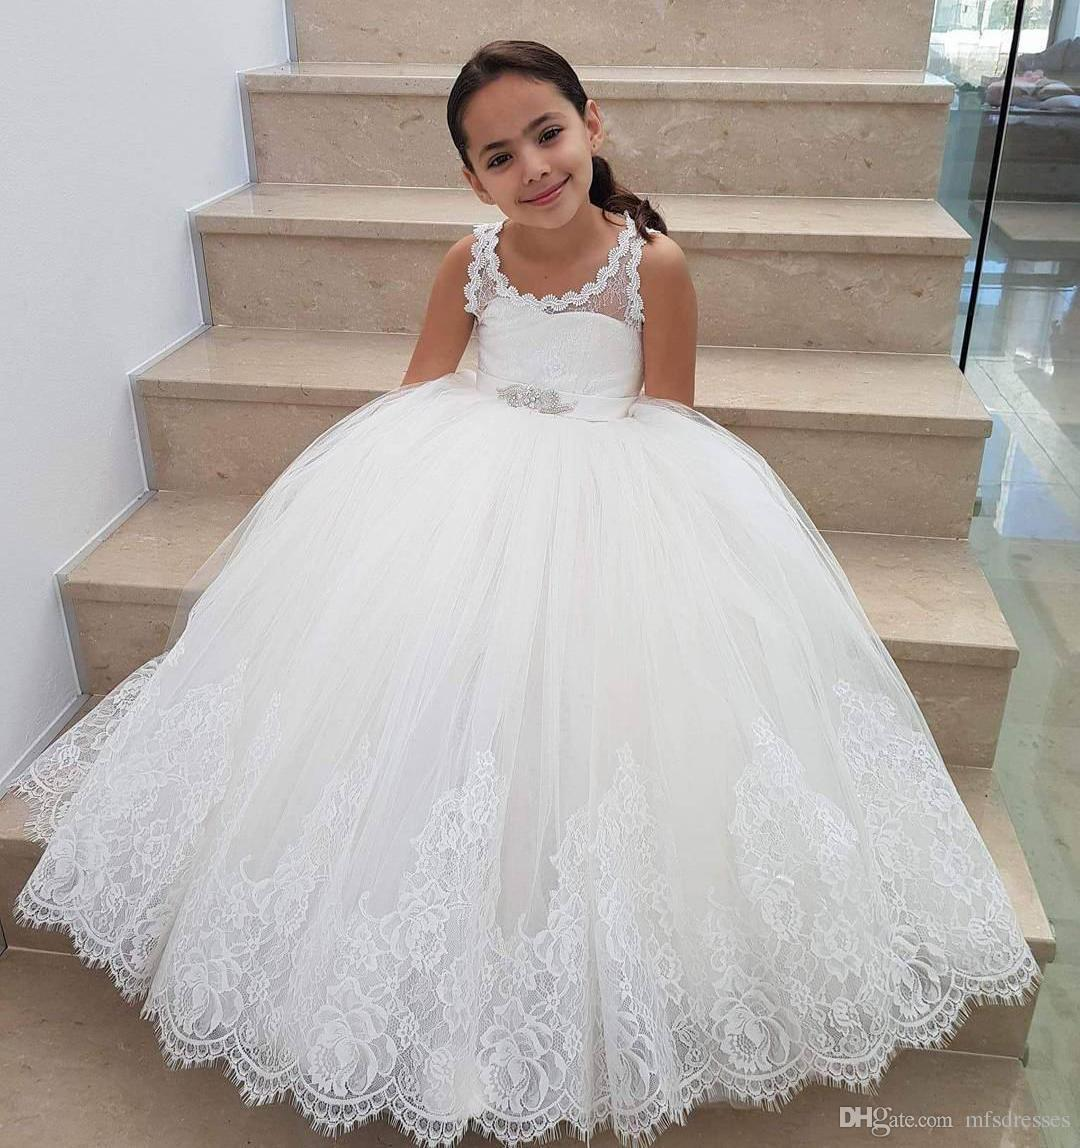 2018 Princess Flower Girls Dresses With Beads Sash White Lace